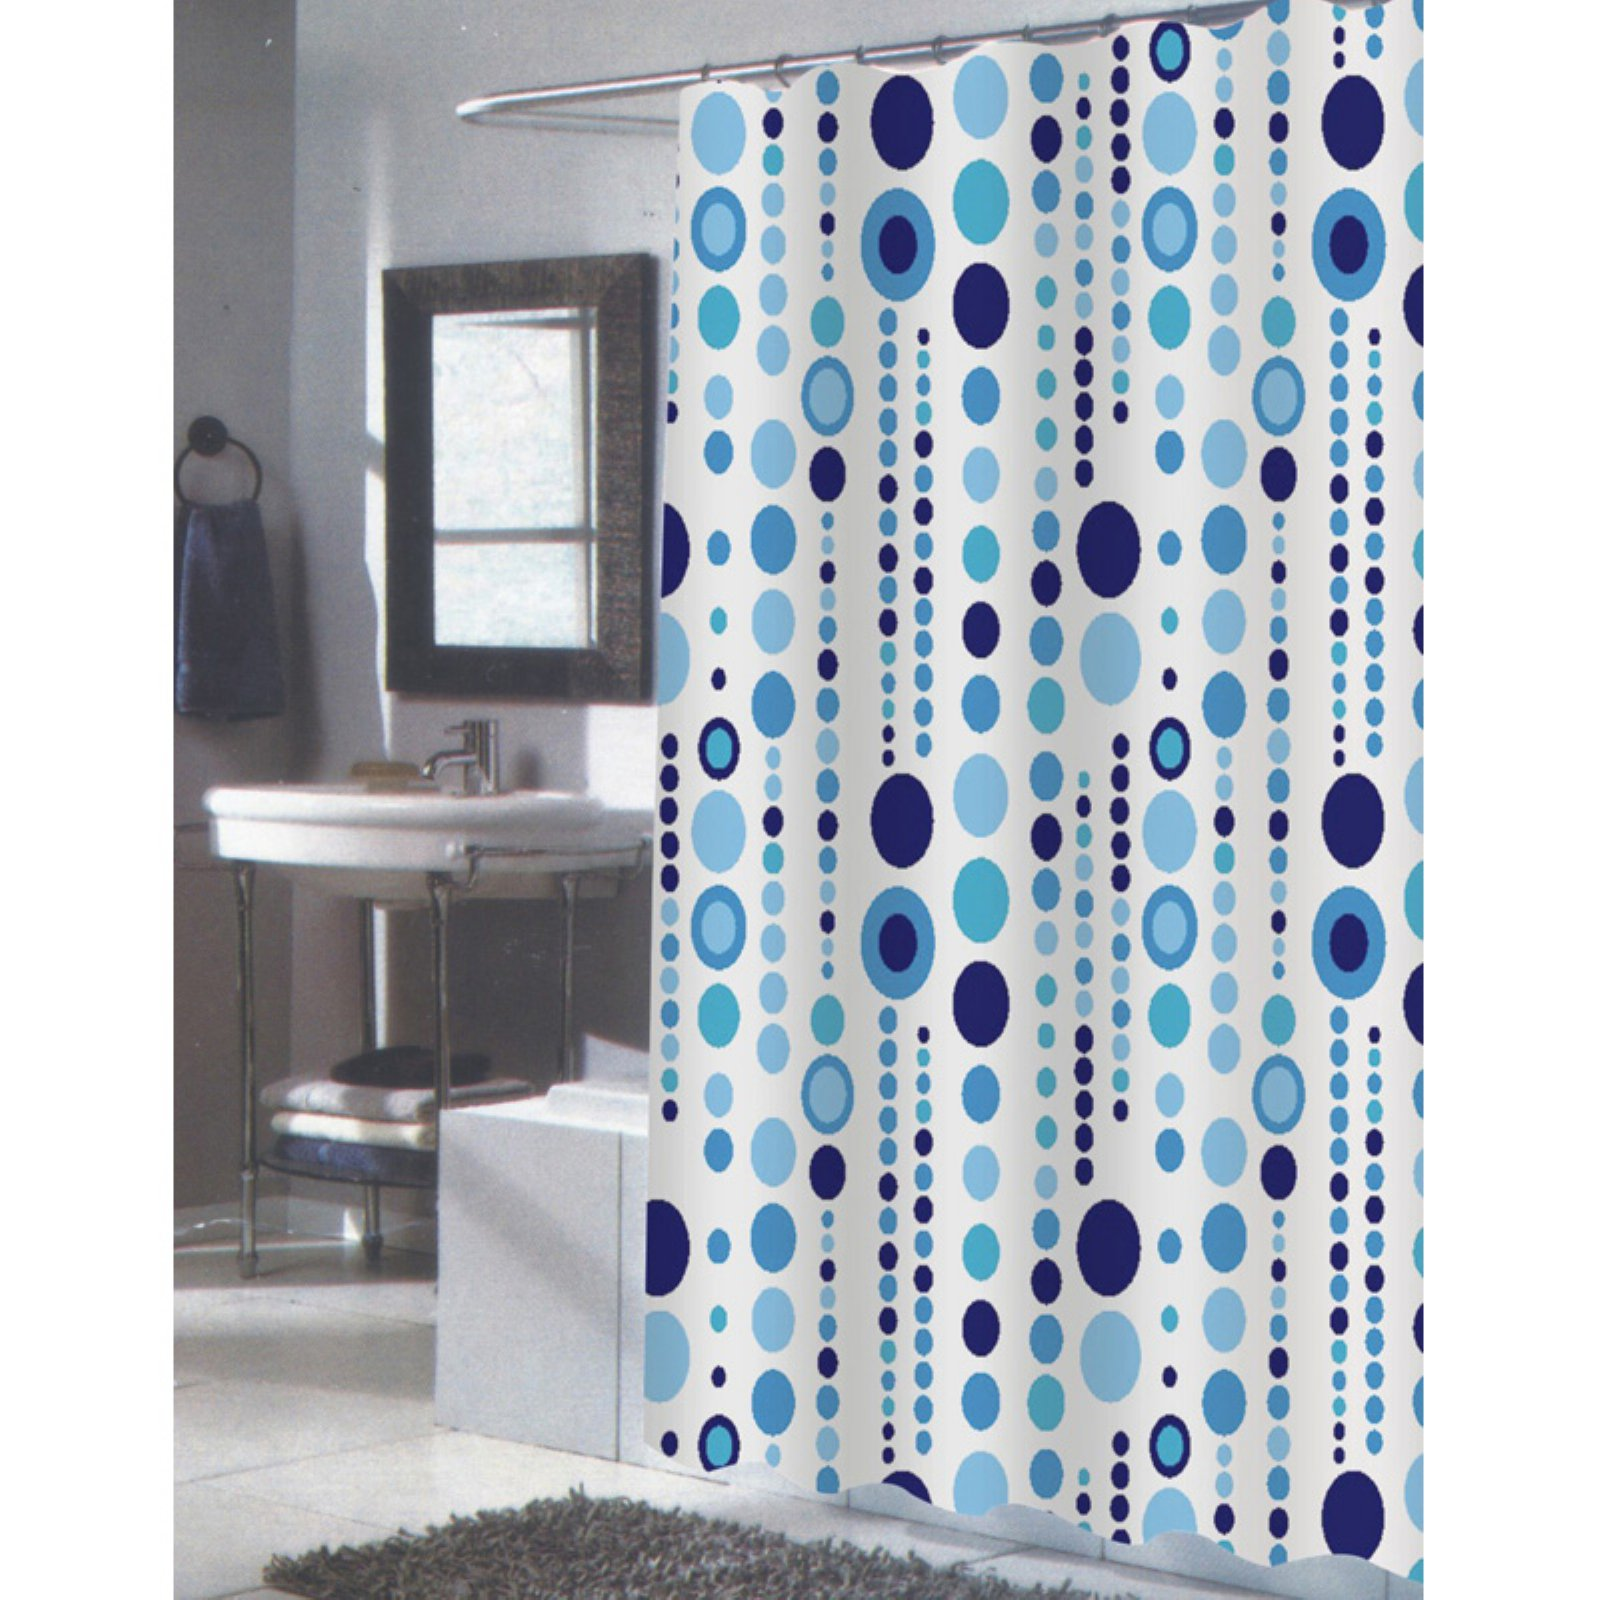 Carnation Home Fashions Mia Extra Long Blue and White Fabric Shower Curtain by Carnation Home Fashions